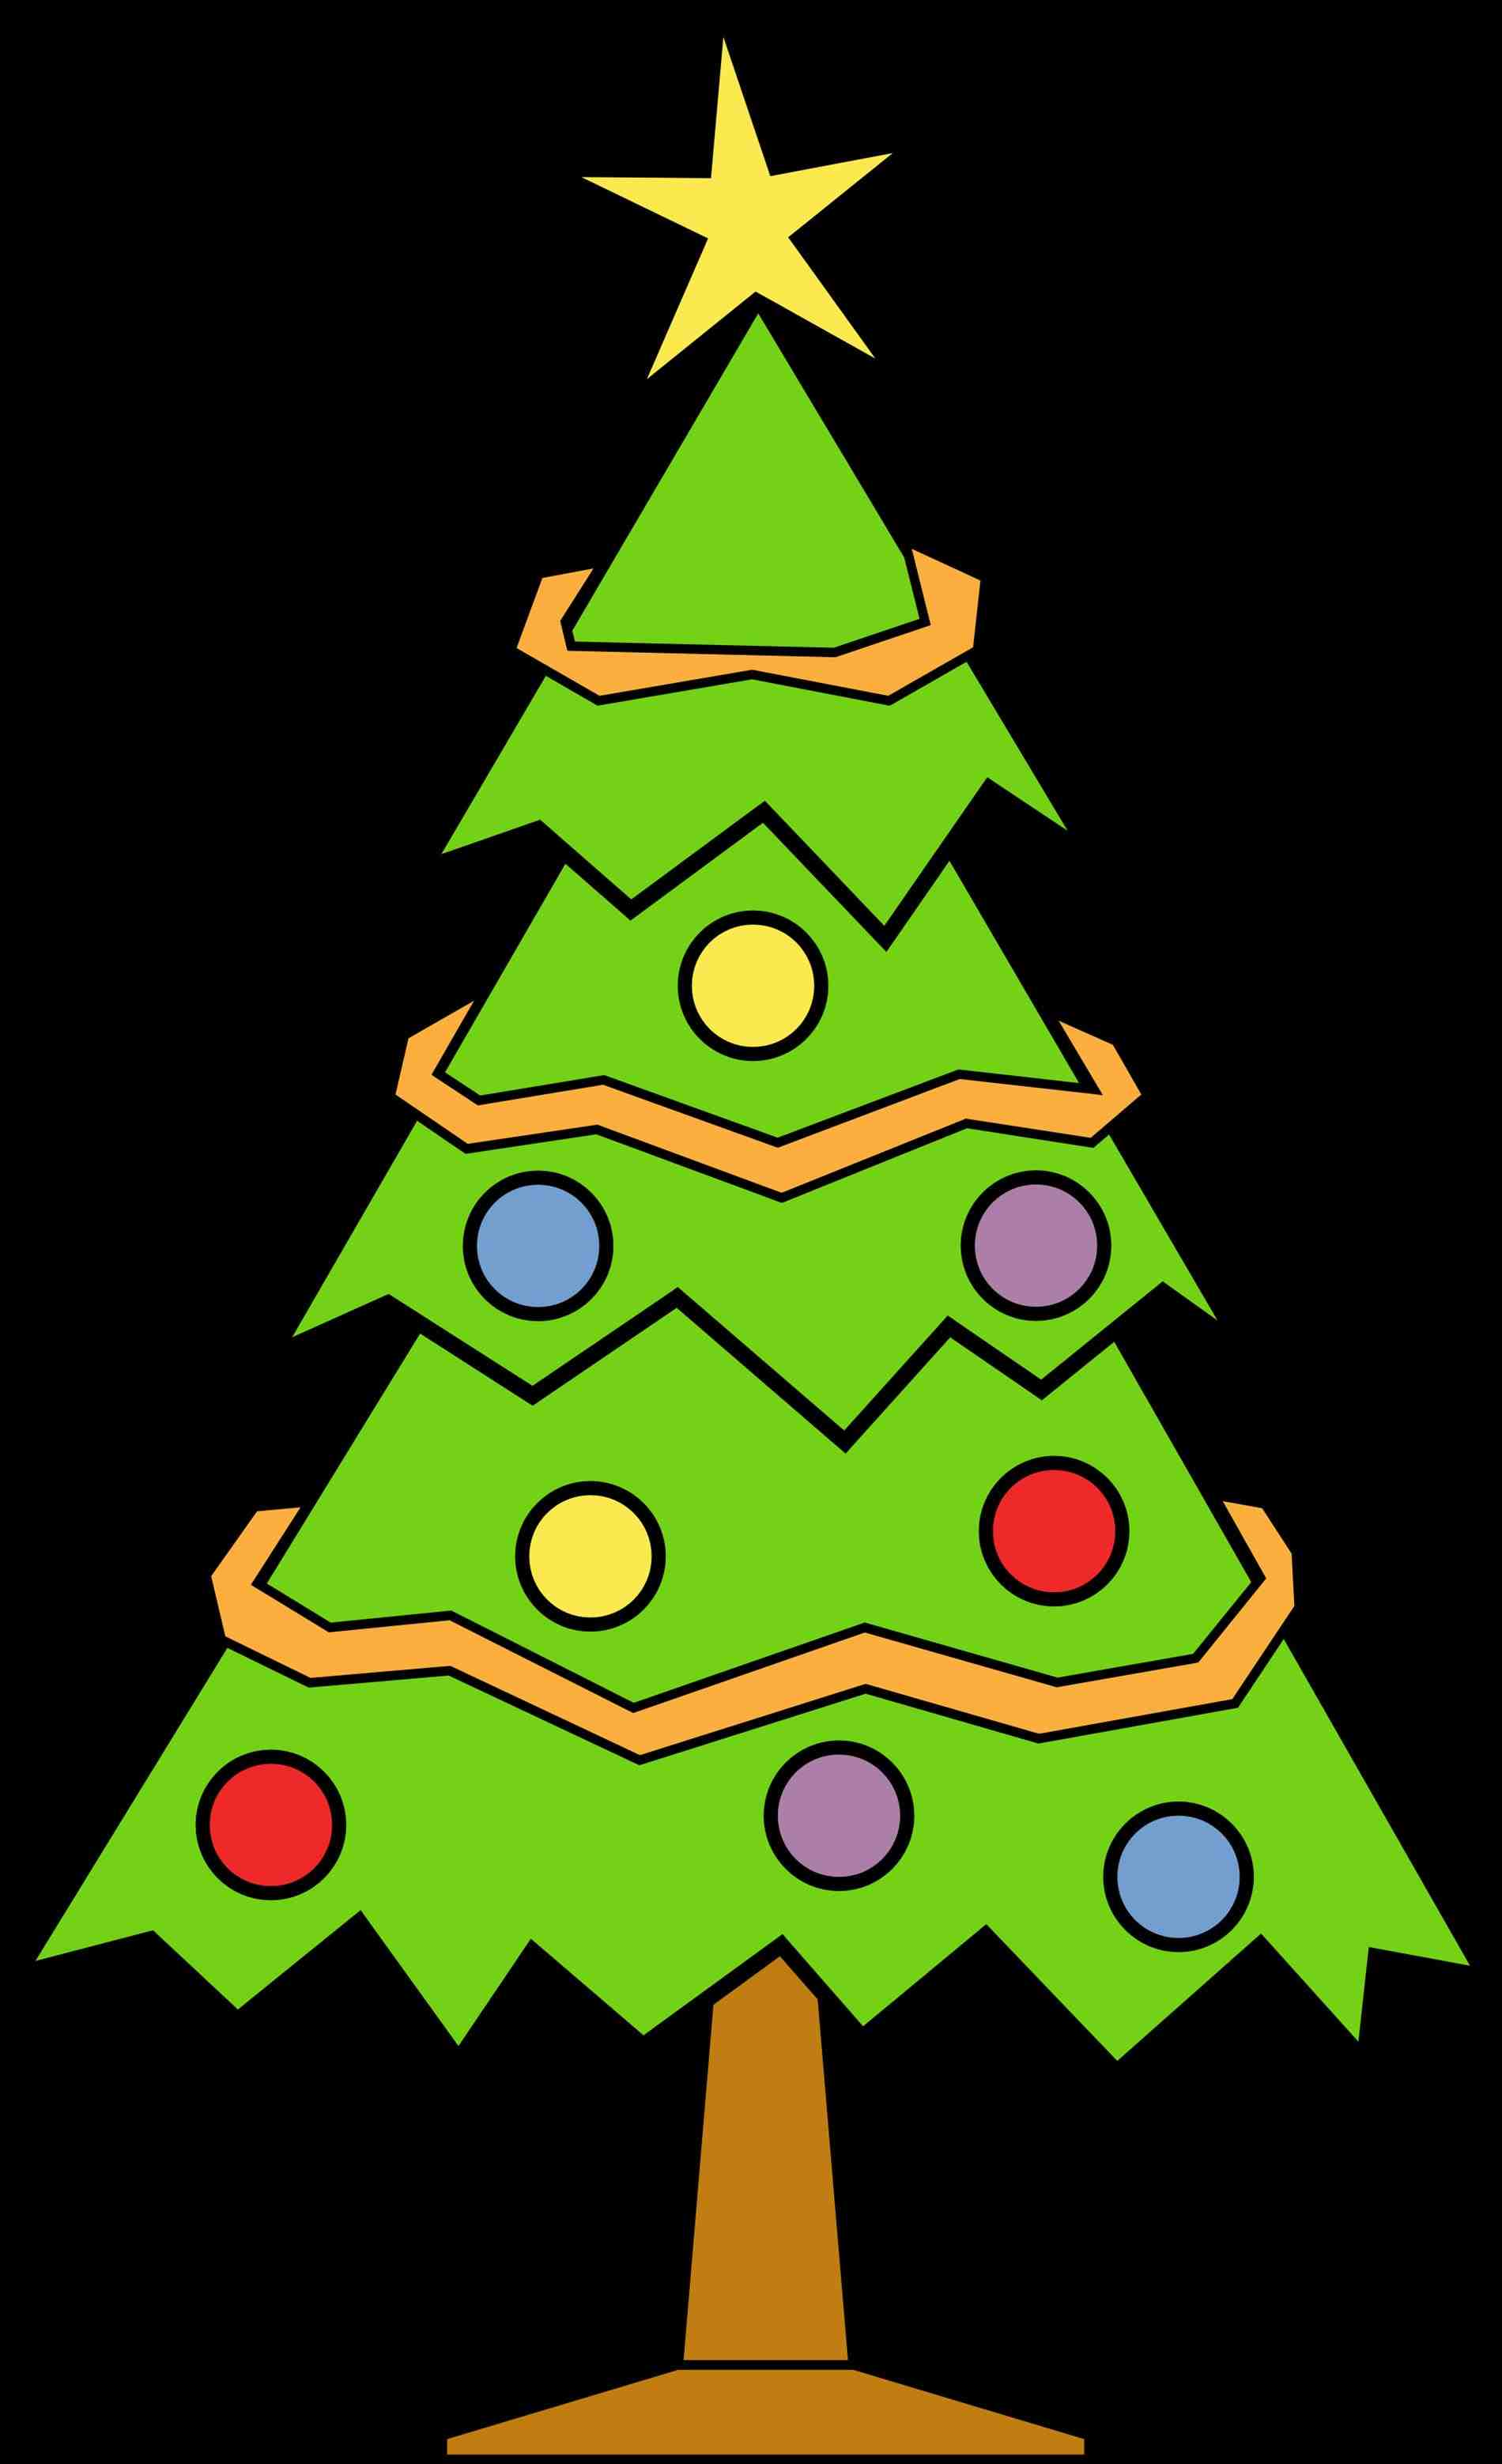 1900x3117 Christmas Tree Clipart Outline Cheminee.website